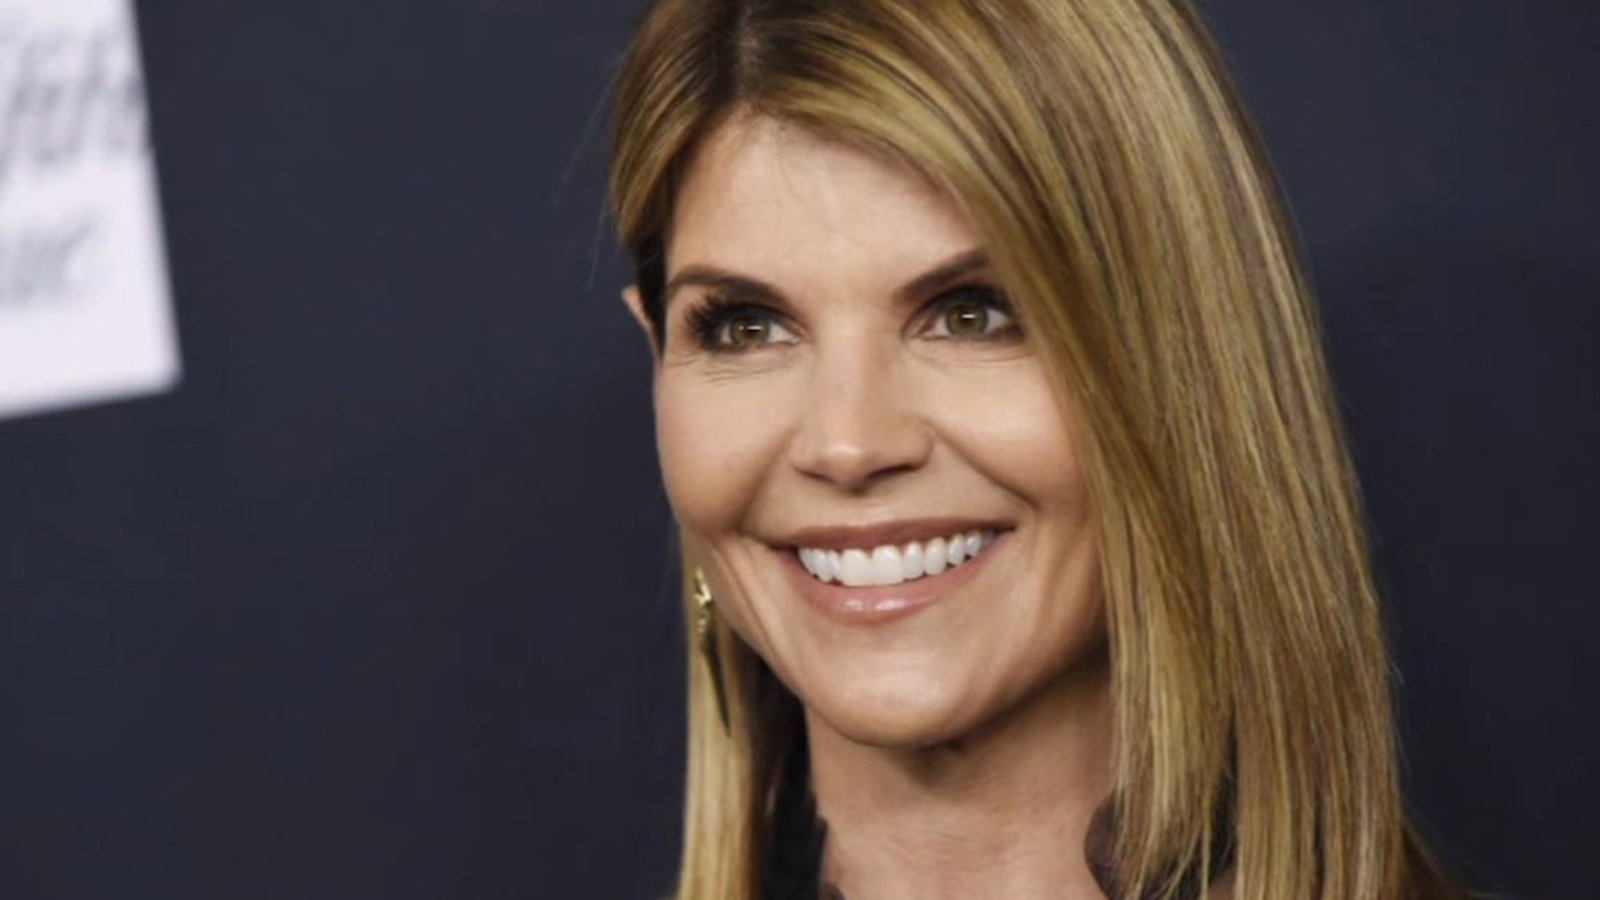 Lori Loughlin Reportedly 'Hopeful' She Can One Day Make A Successful Return To Her Acting Career After Serving Her Jail Sentence